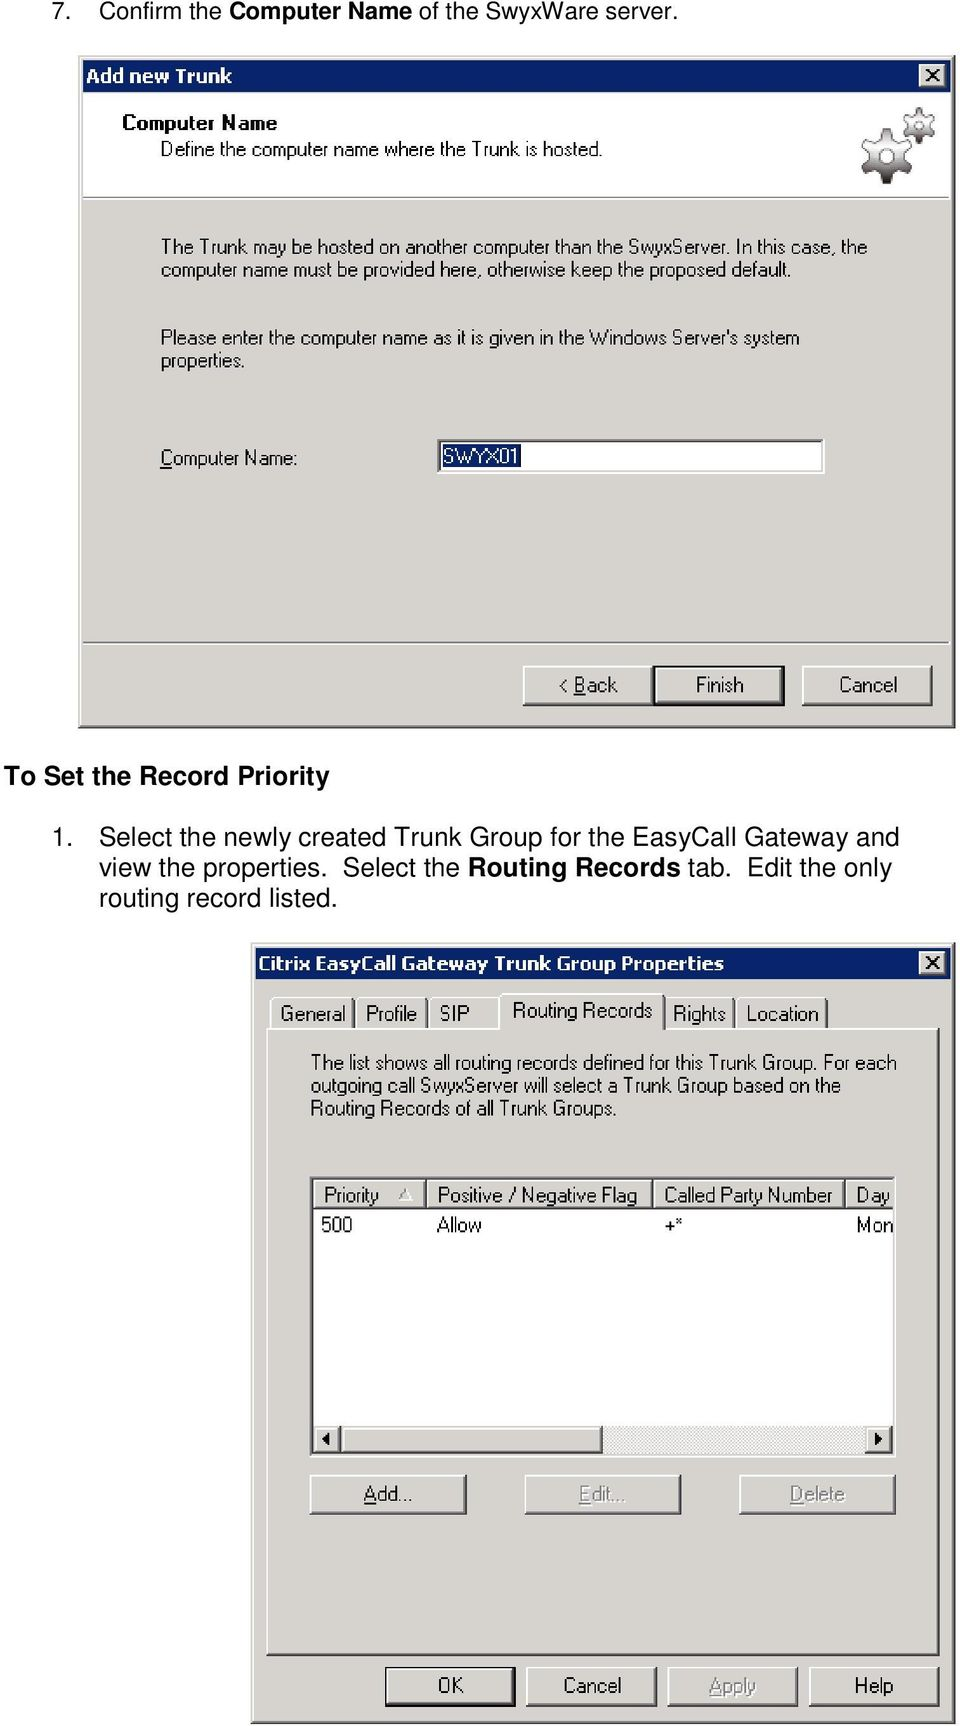 Select the newly created Trunk Group for the EasyCall